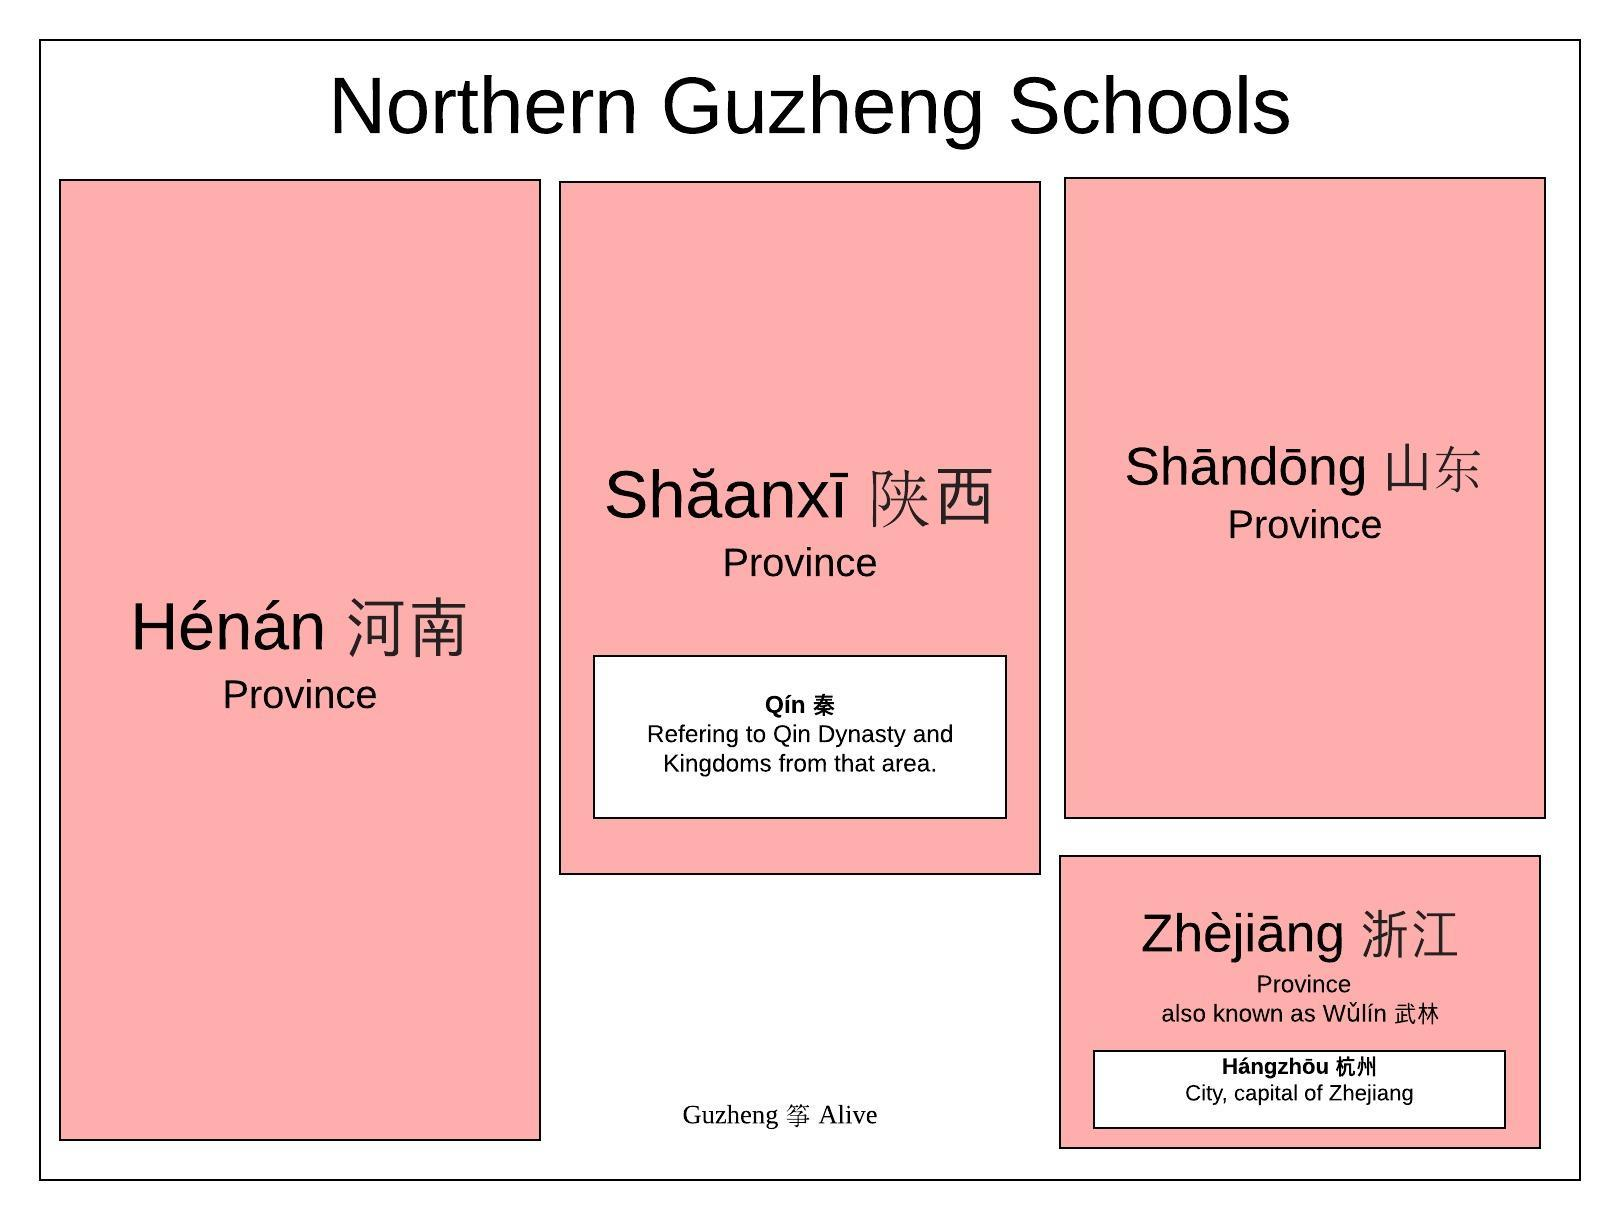 Northern Guzheng Schools. Color indicates the most common name. Size is approximate popularity. White boxes are terms that are now included in the colored terms. They are: Henan, Shaanxi (Qin) Shandong, and Zhejiang (Hangzhou)